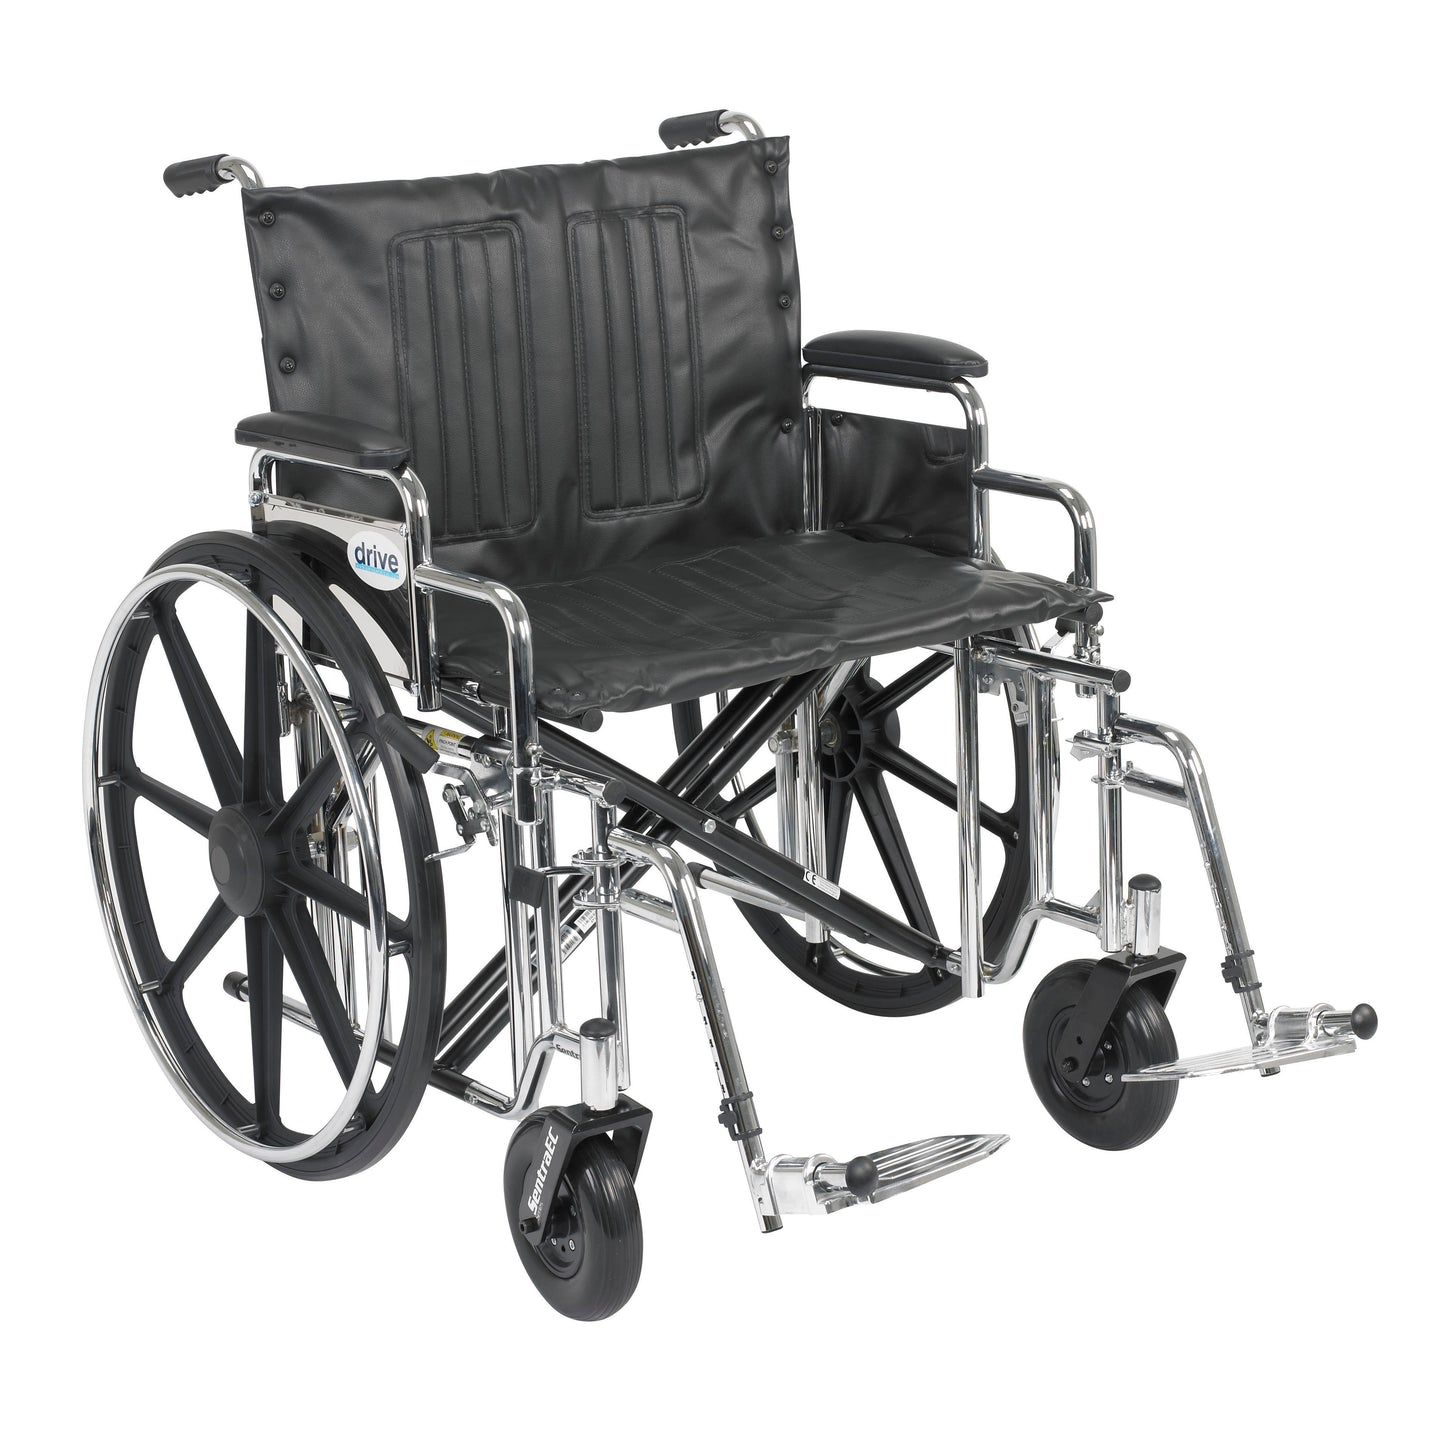 Drive Sentra Extra Heavy Duty Wheelchair- Detachable Desk Arms- Swing away Footrests- 24